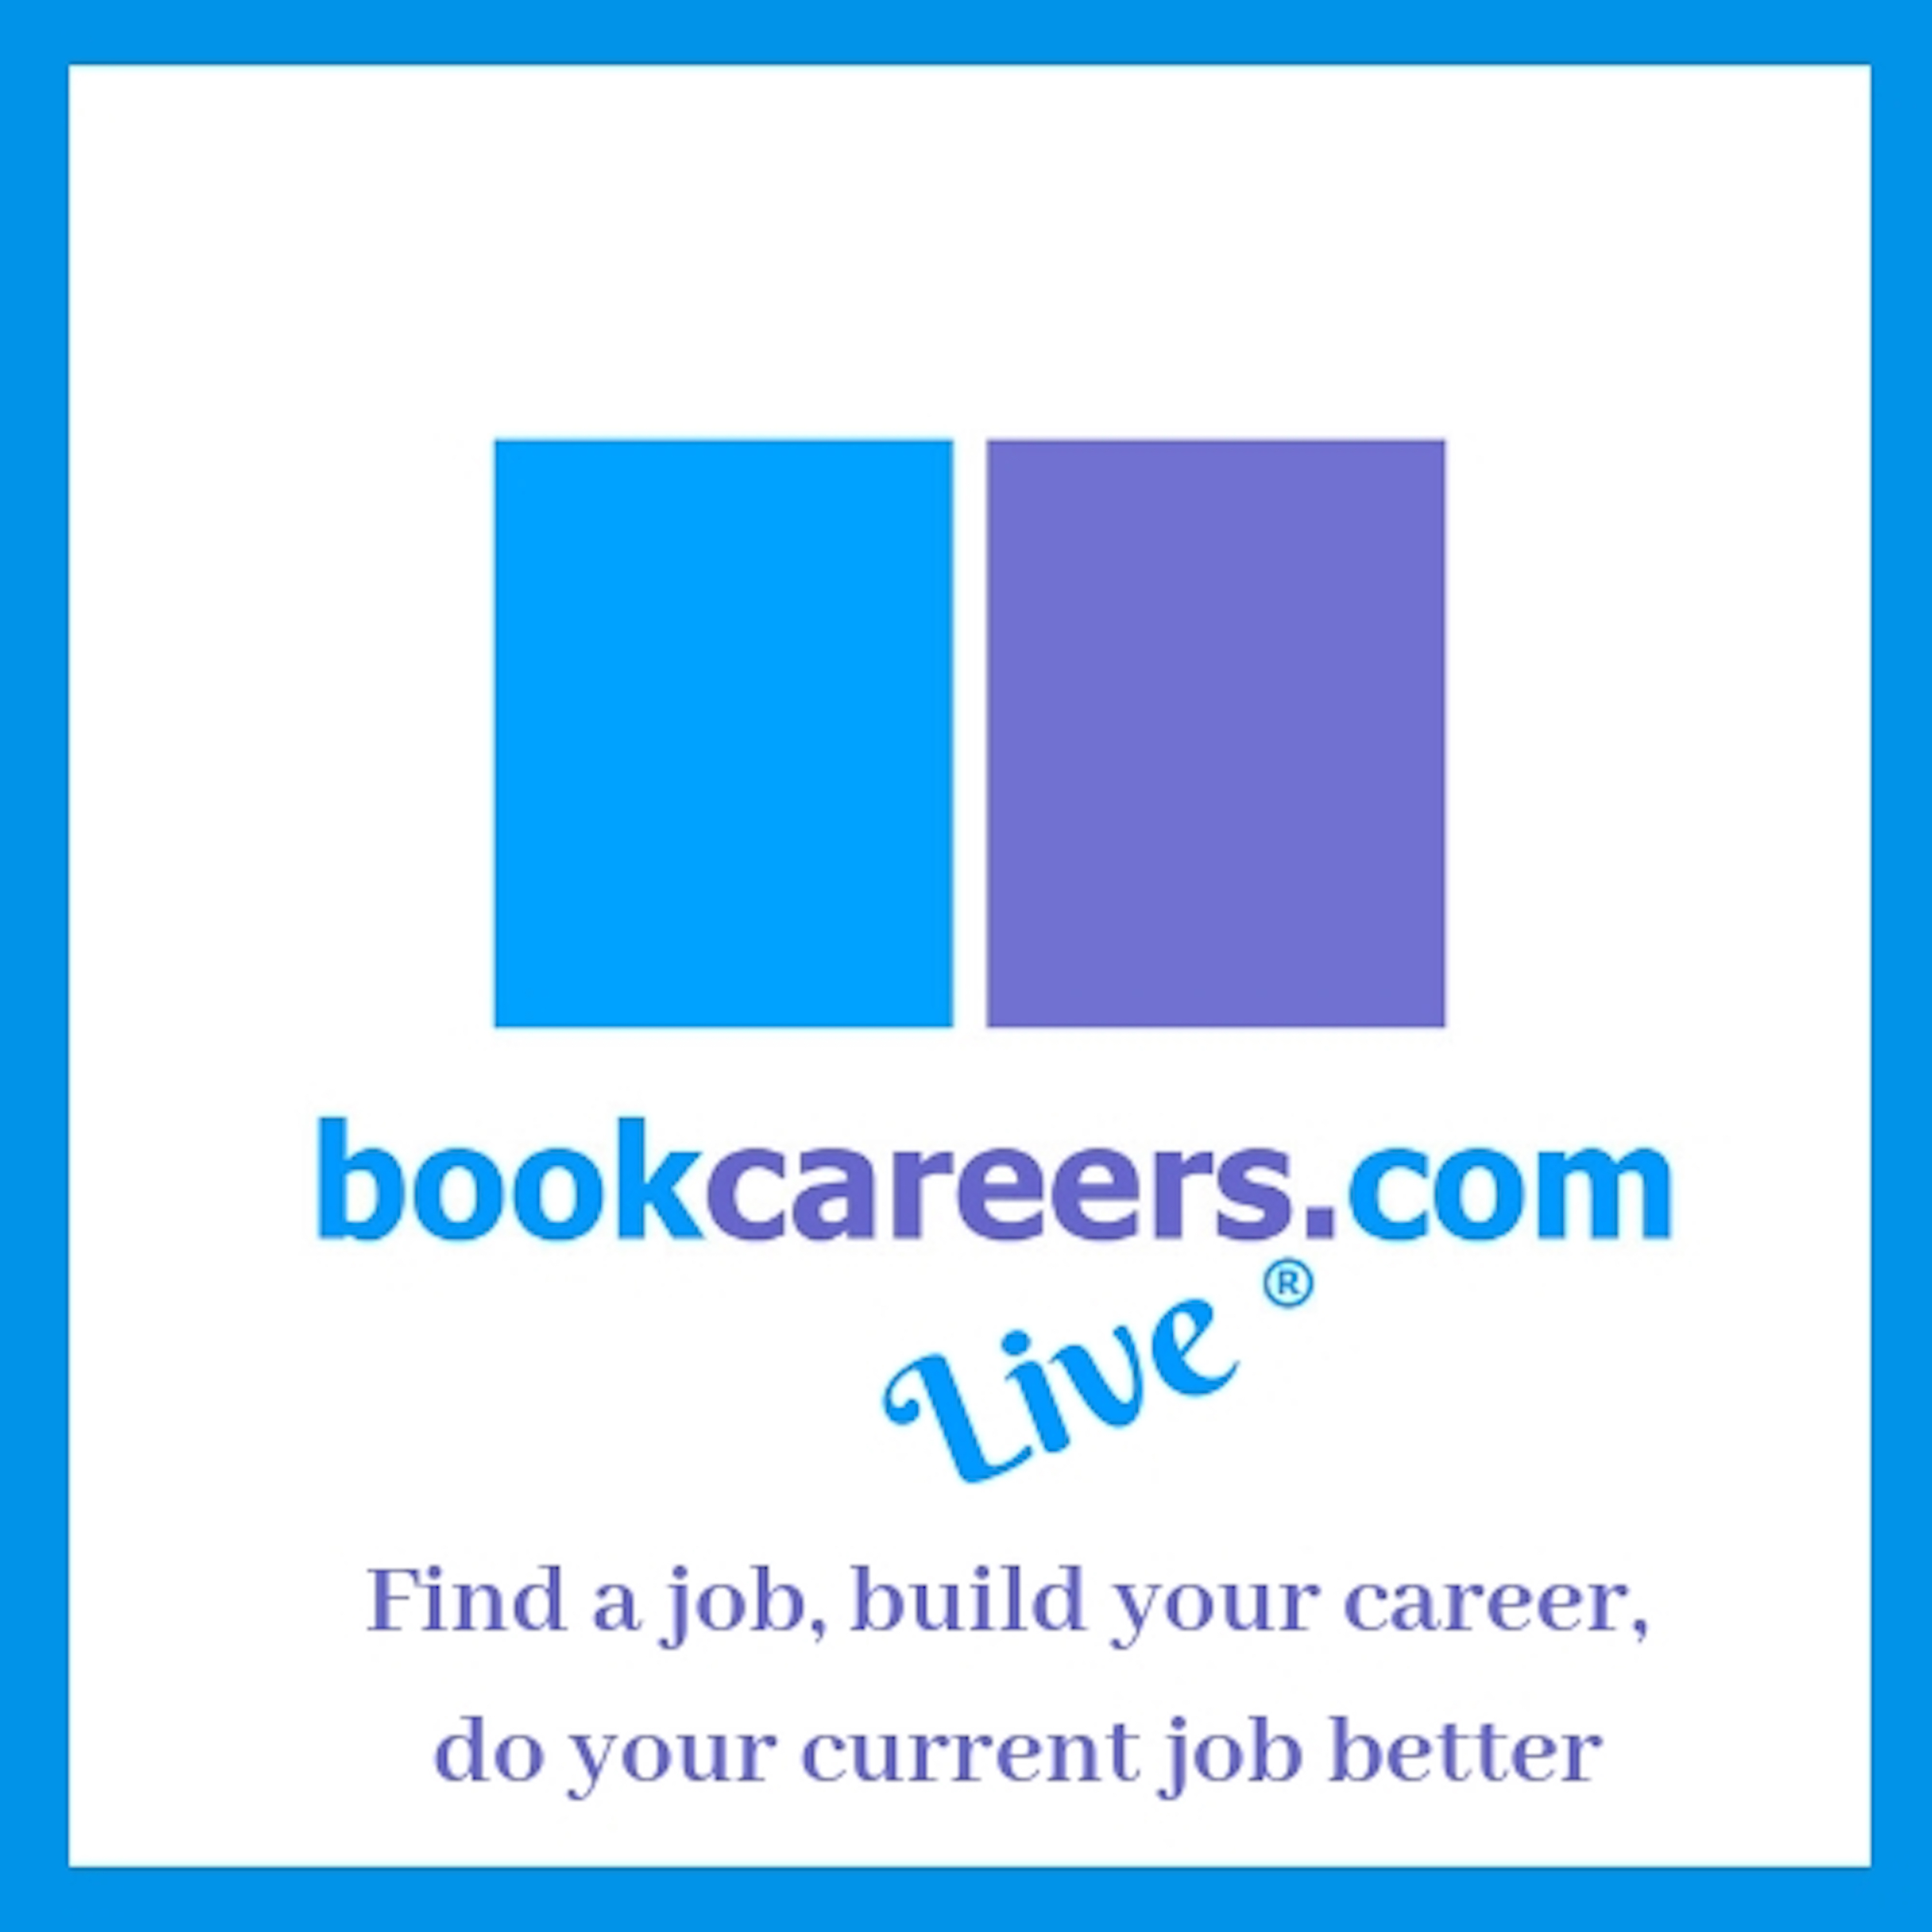 Bookcareers